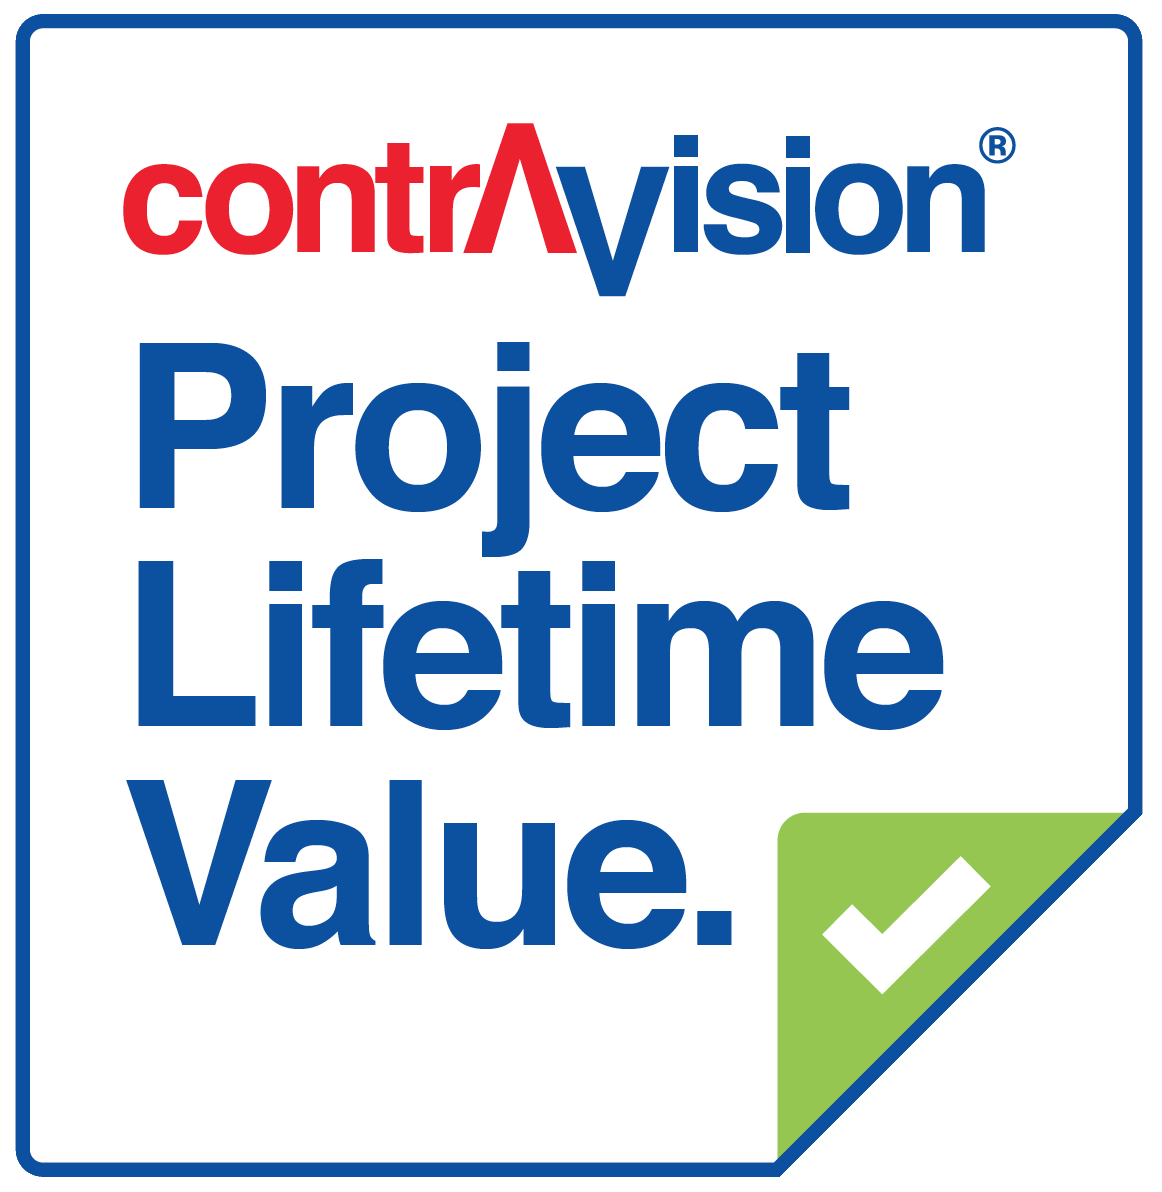 Contra Vision Project Lifetime Value logo